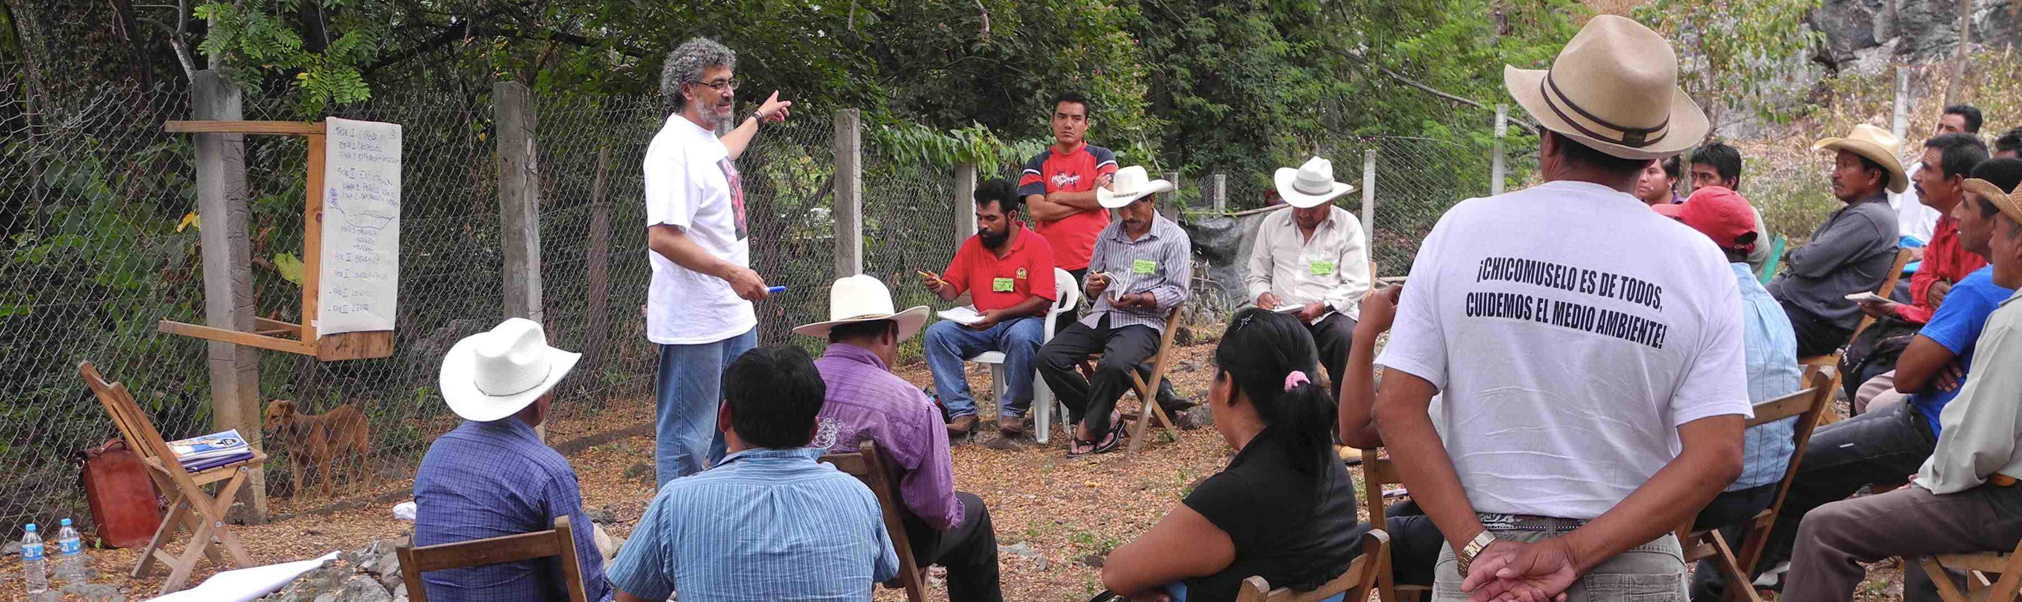 Community meeting in Chiapas, Mexico with Gustavo Castro; Photo: MiningWatch